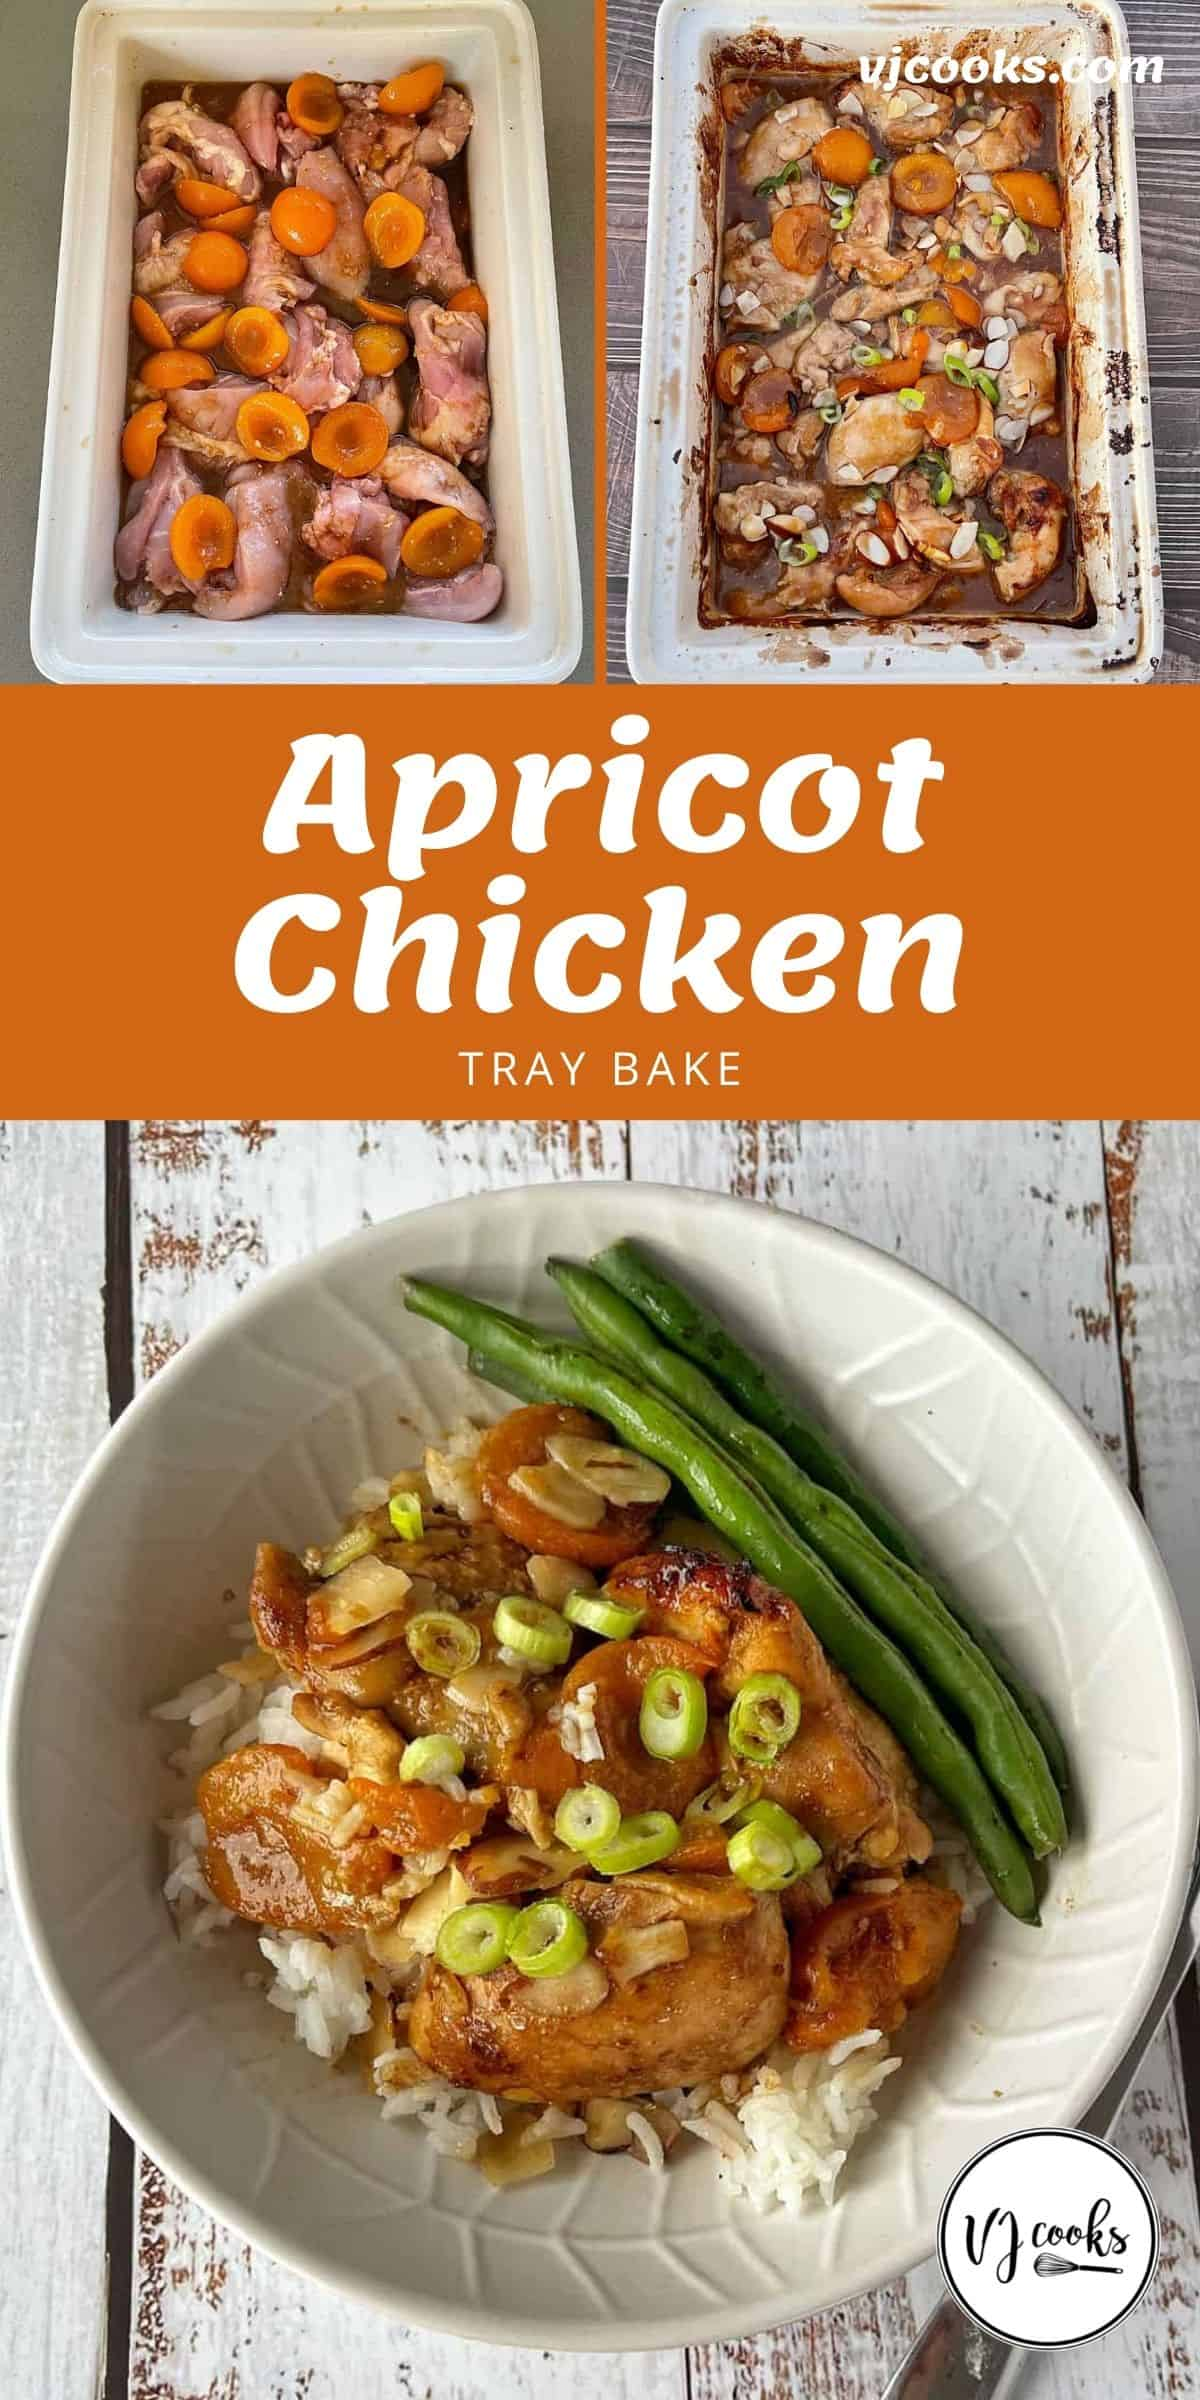 The process of cooking Apricot chicken tray bake.